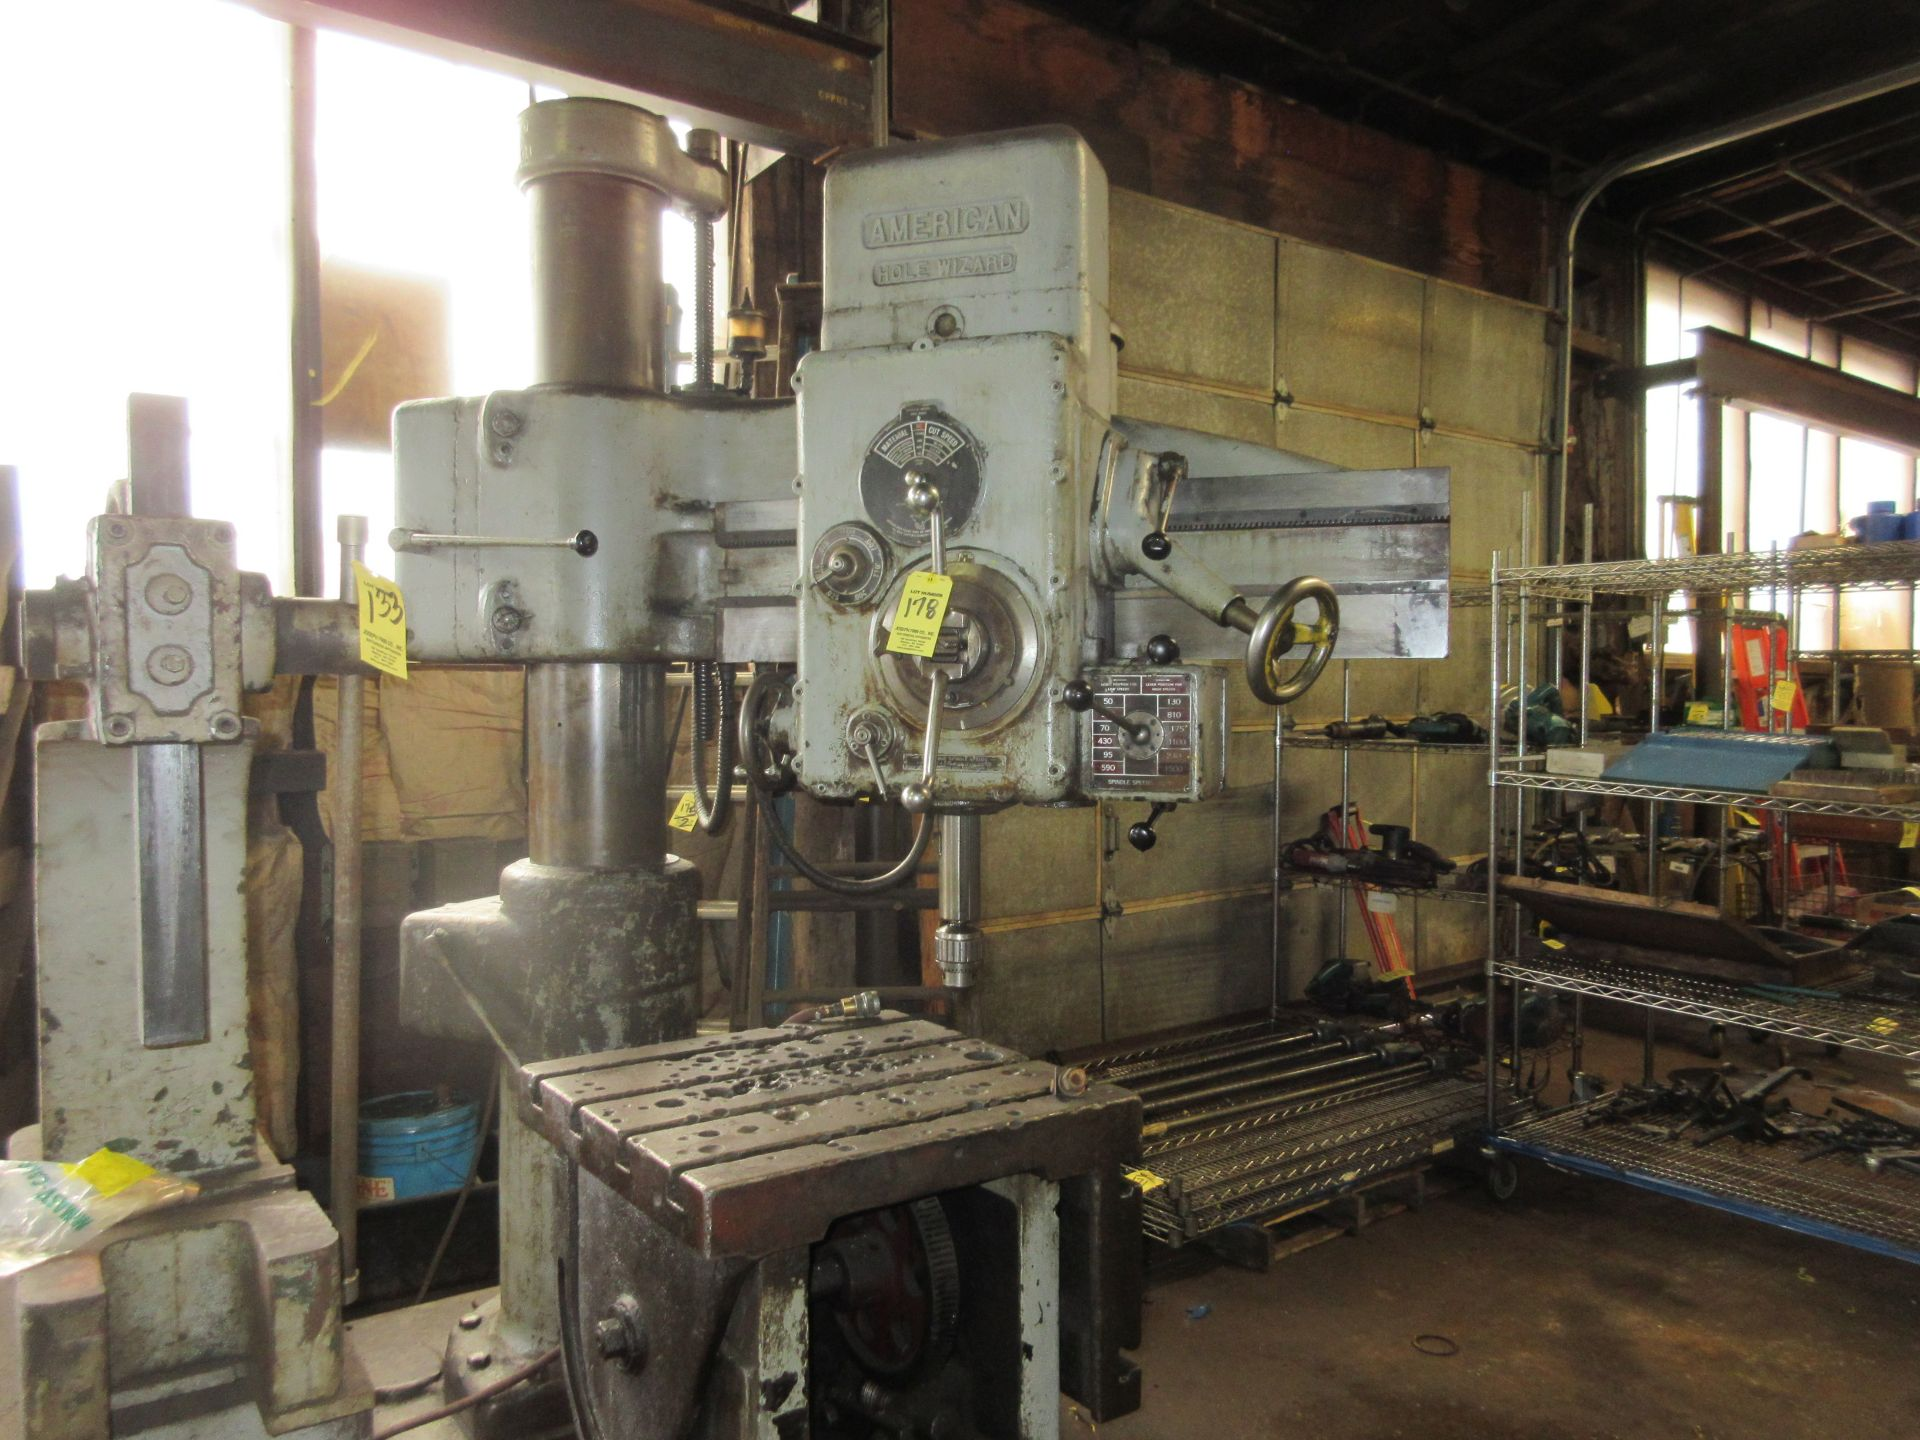 (1) American Hole Wizard Radial Arm Drill, Includes (2) Transformers